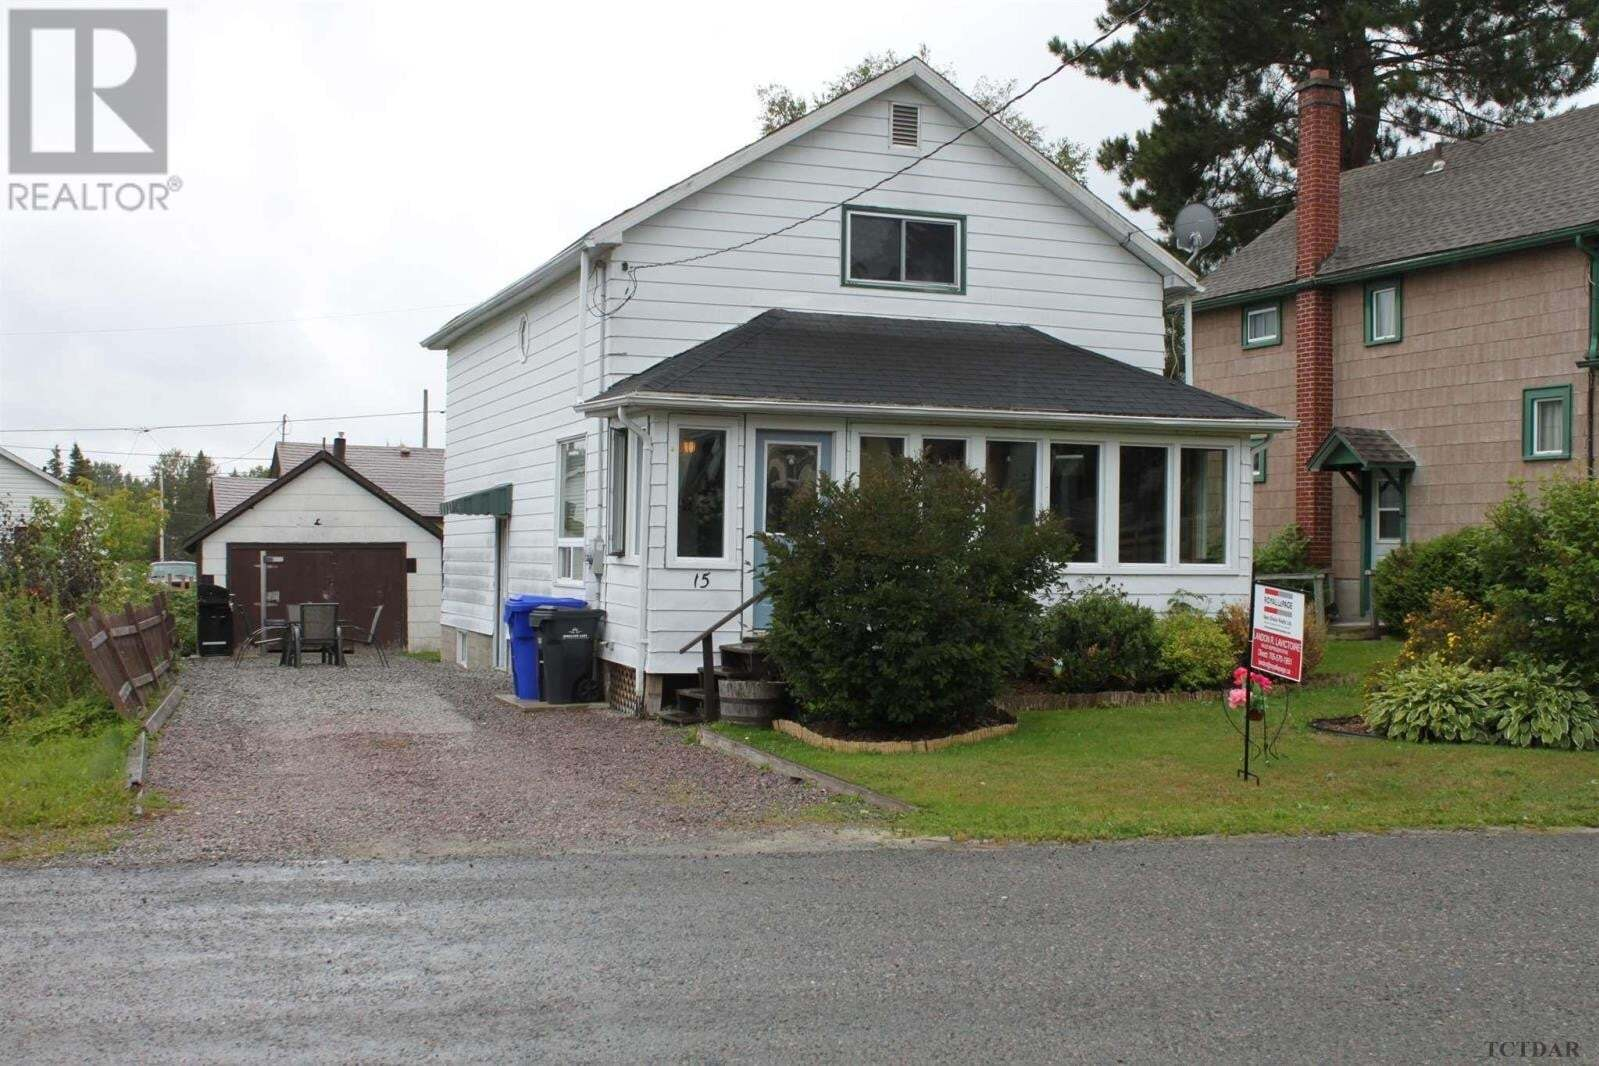 House for sale at 15 Connaught Ave Swastika Ontario - MLS: TM192162